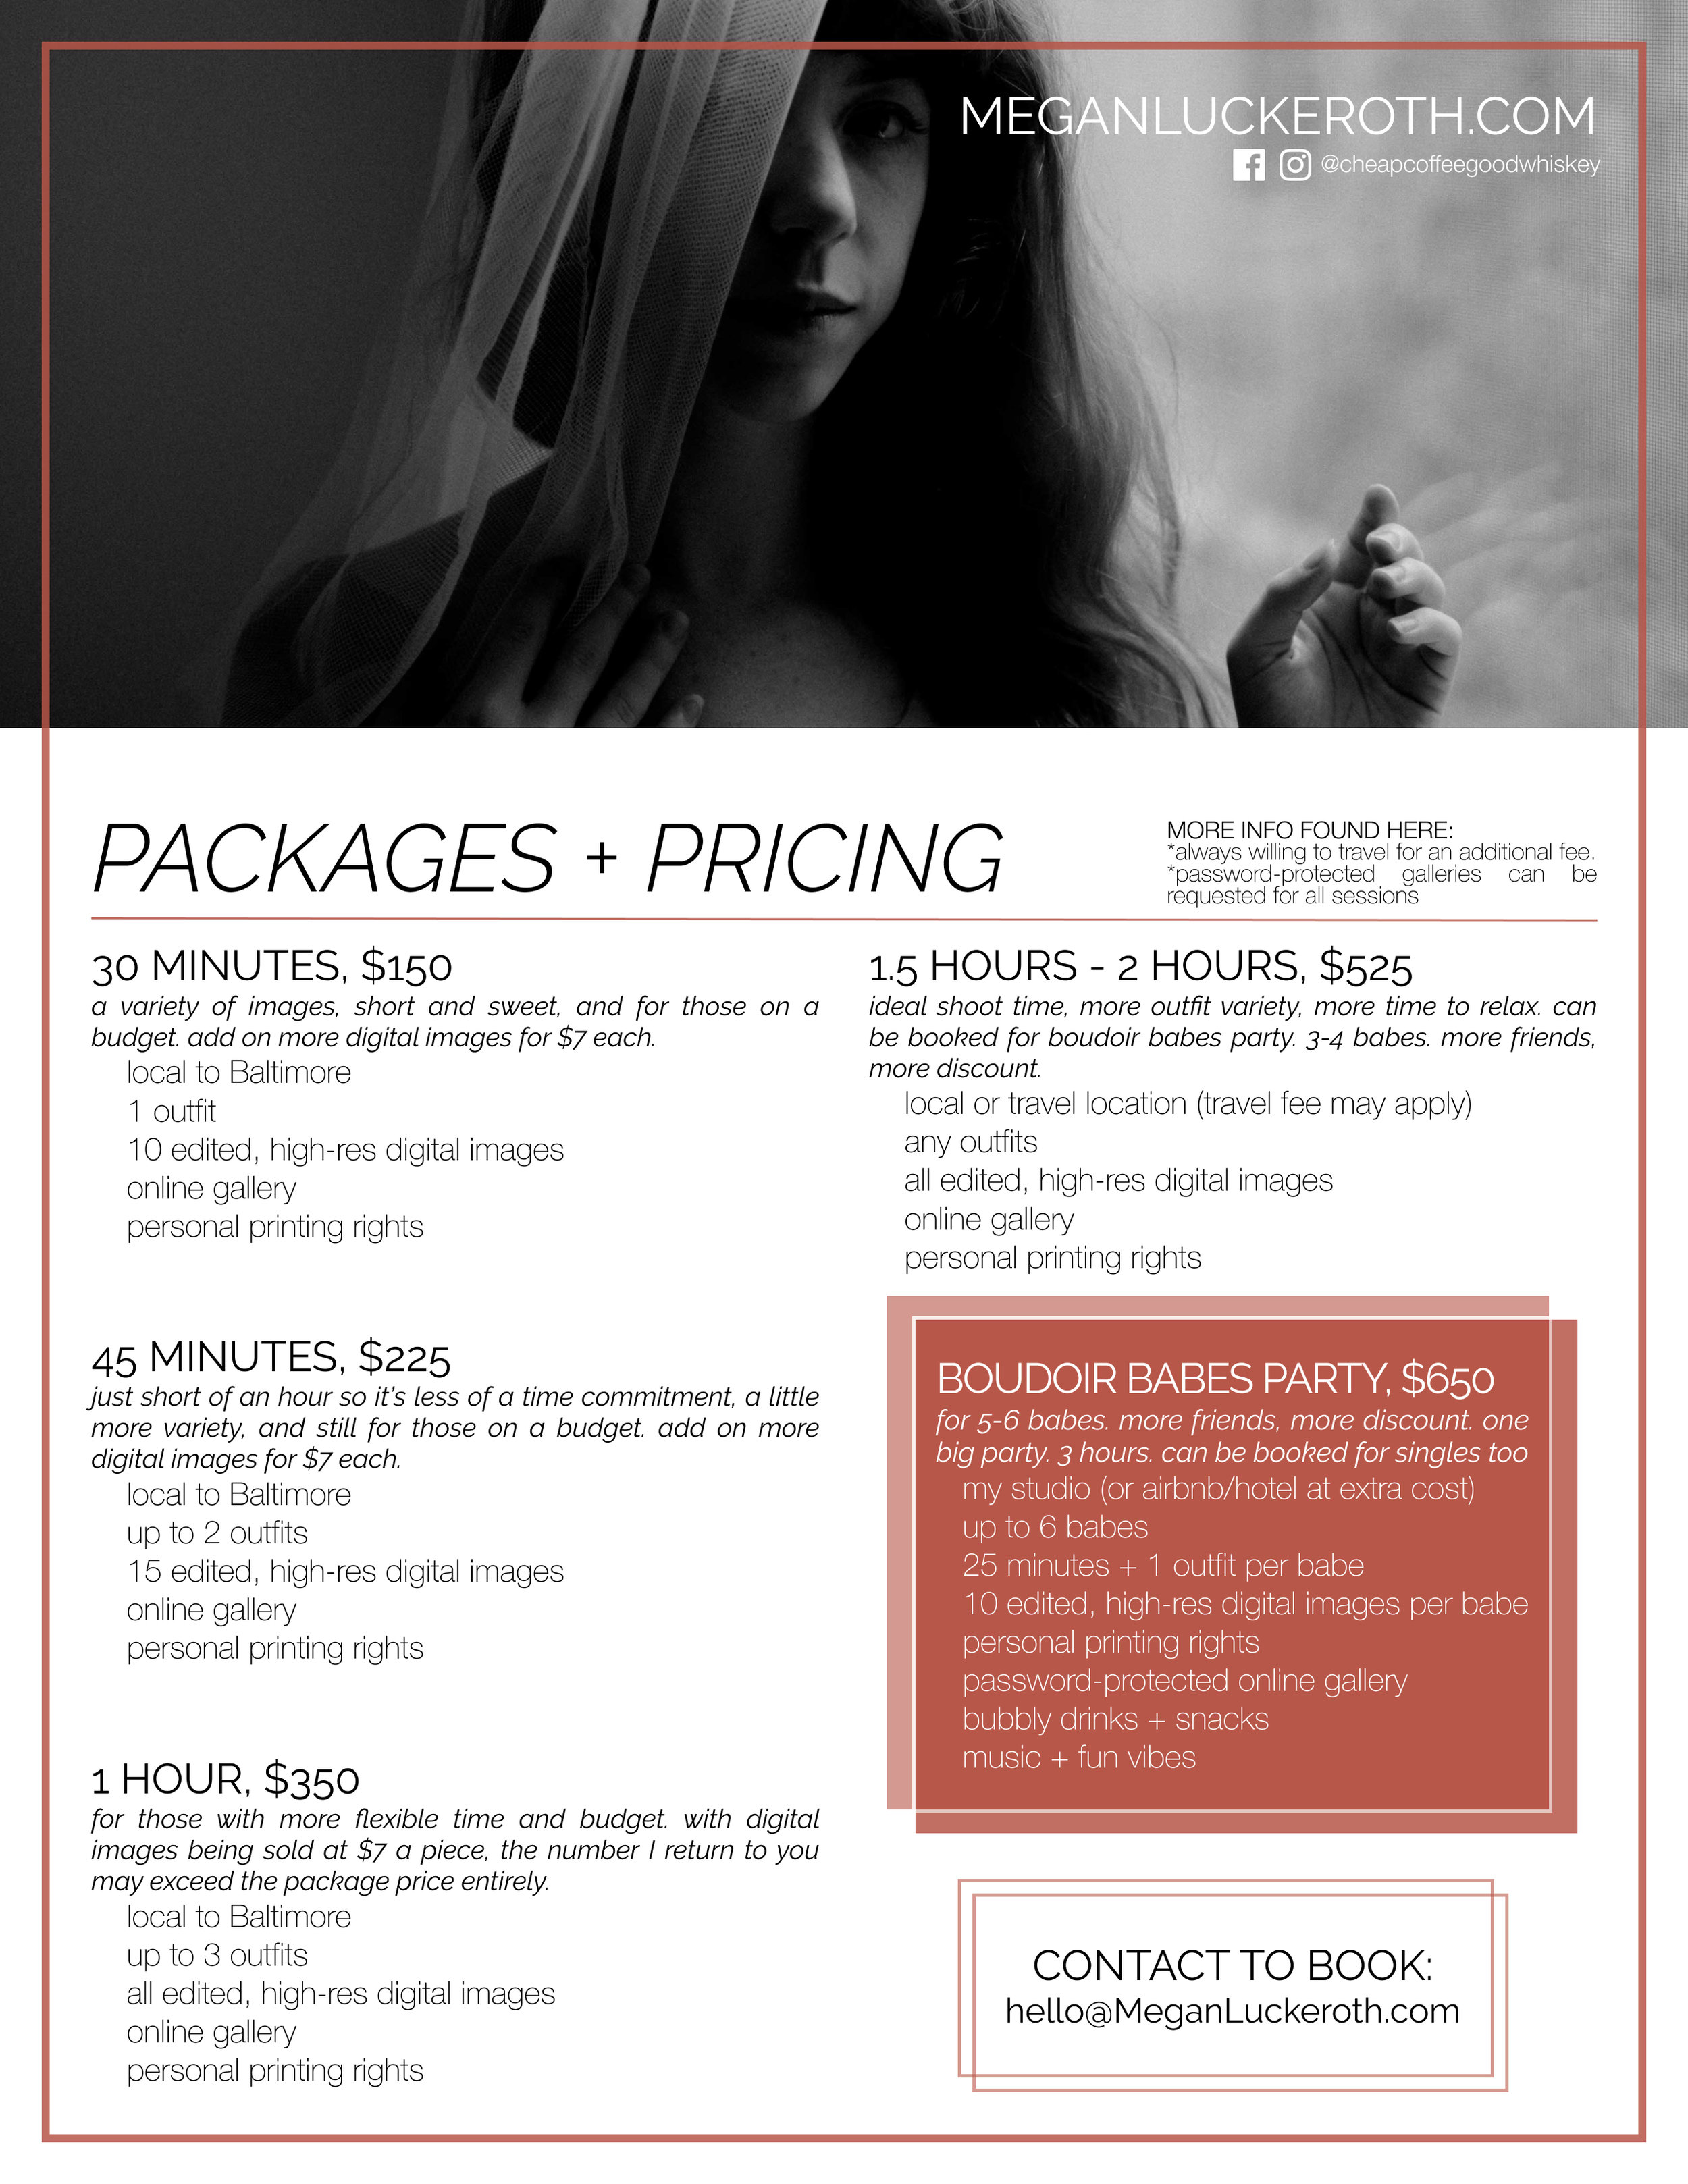 CCGW Pricing + Packages.jpg